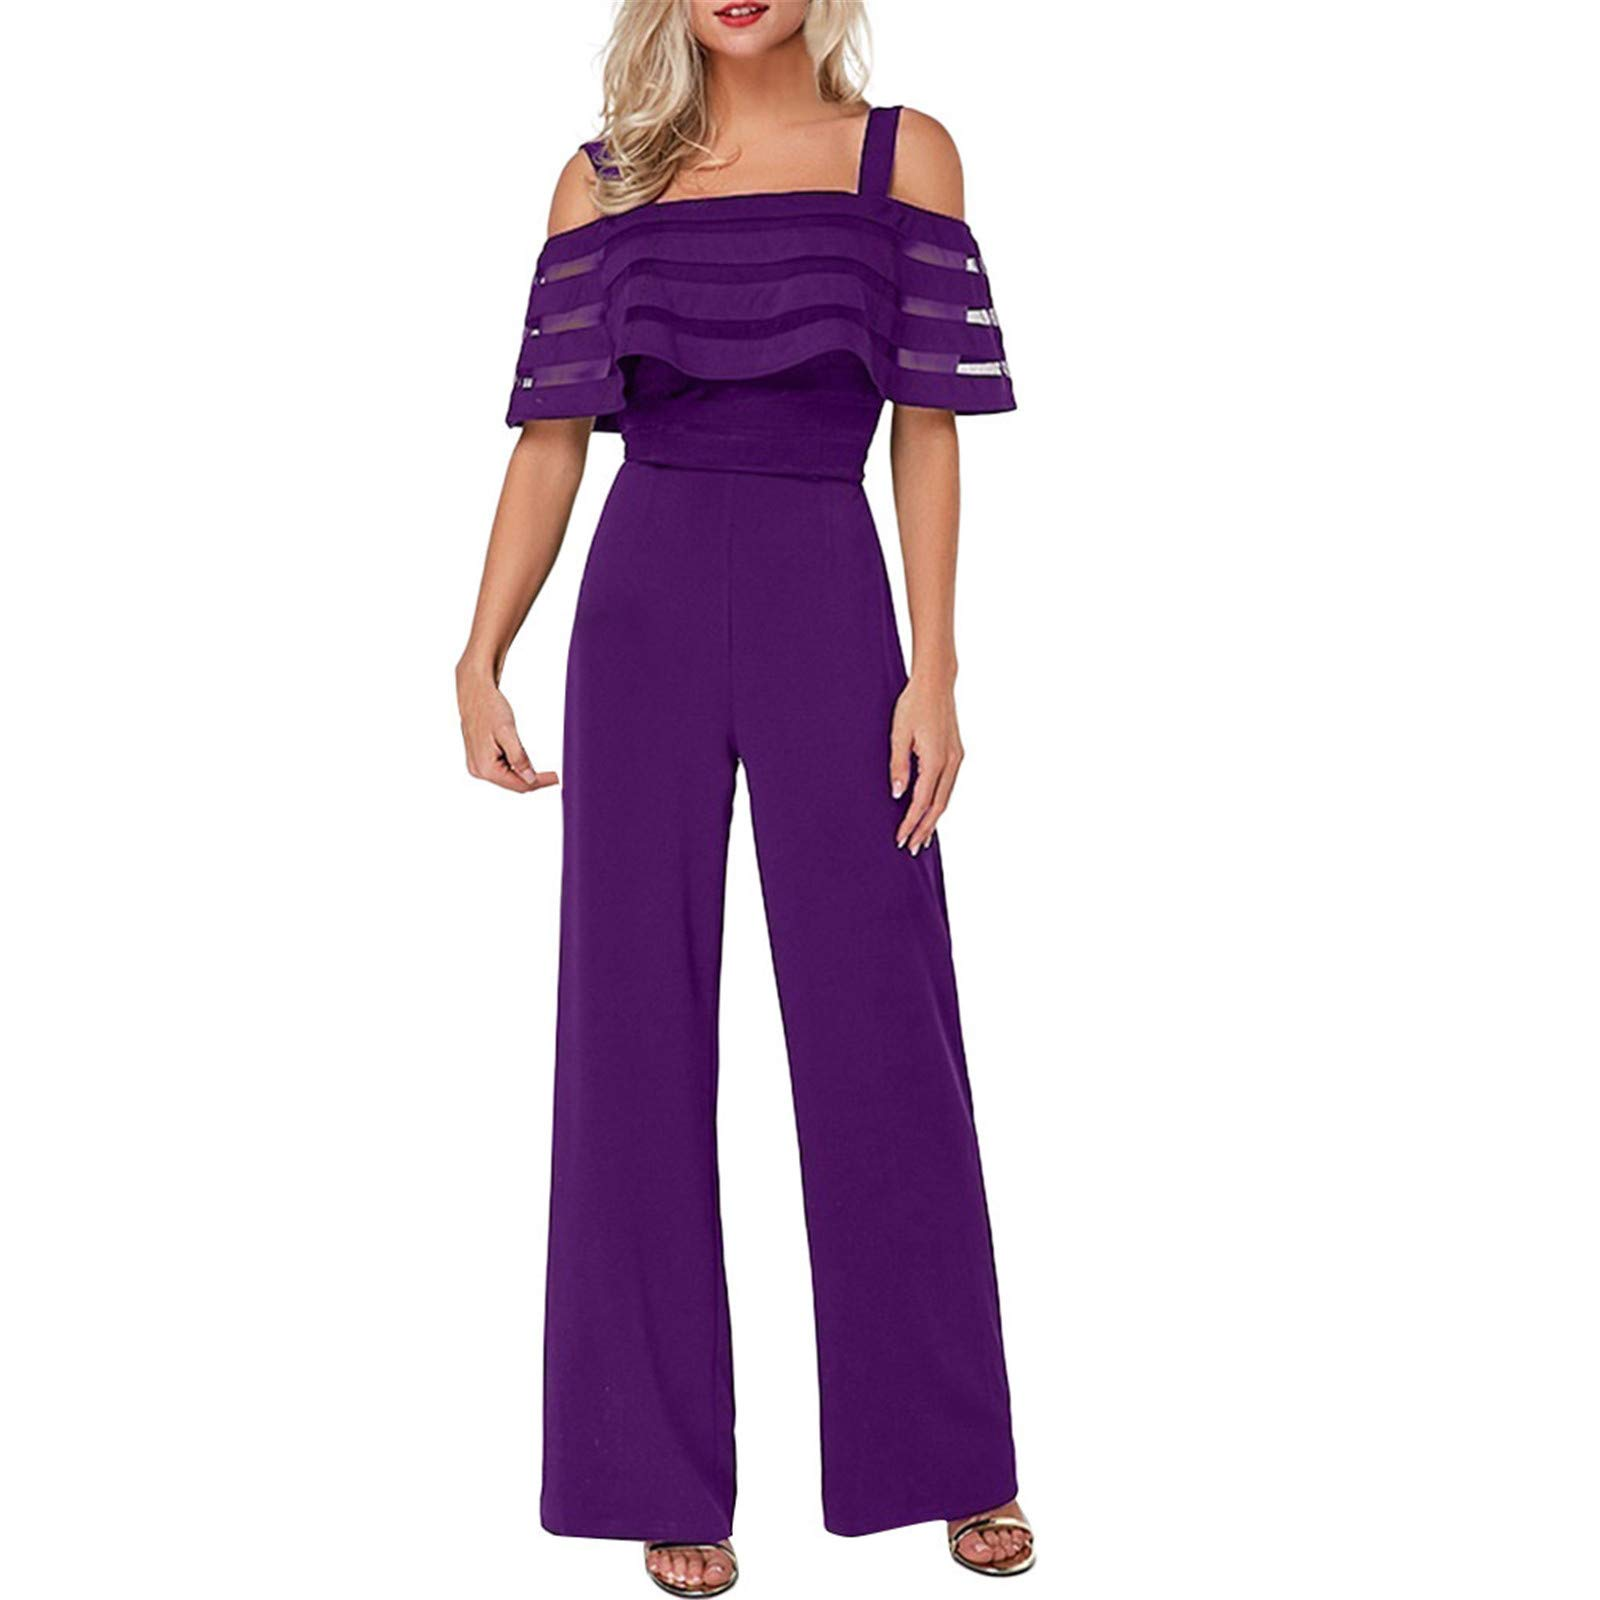 Thenxin Lady's Elegant Jumpsuit Cold Shoulder High Waist Wide Leg Long Pants Playsuit Romper(Purple,S